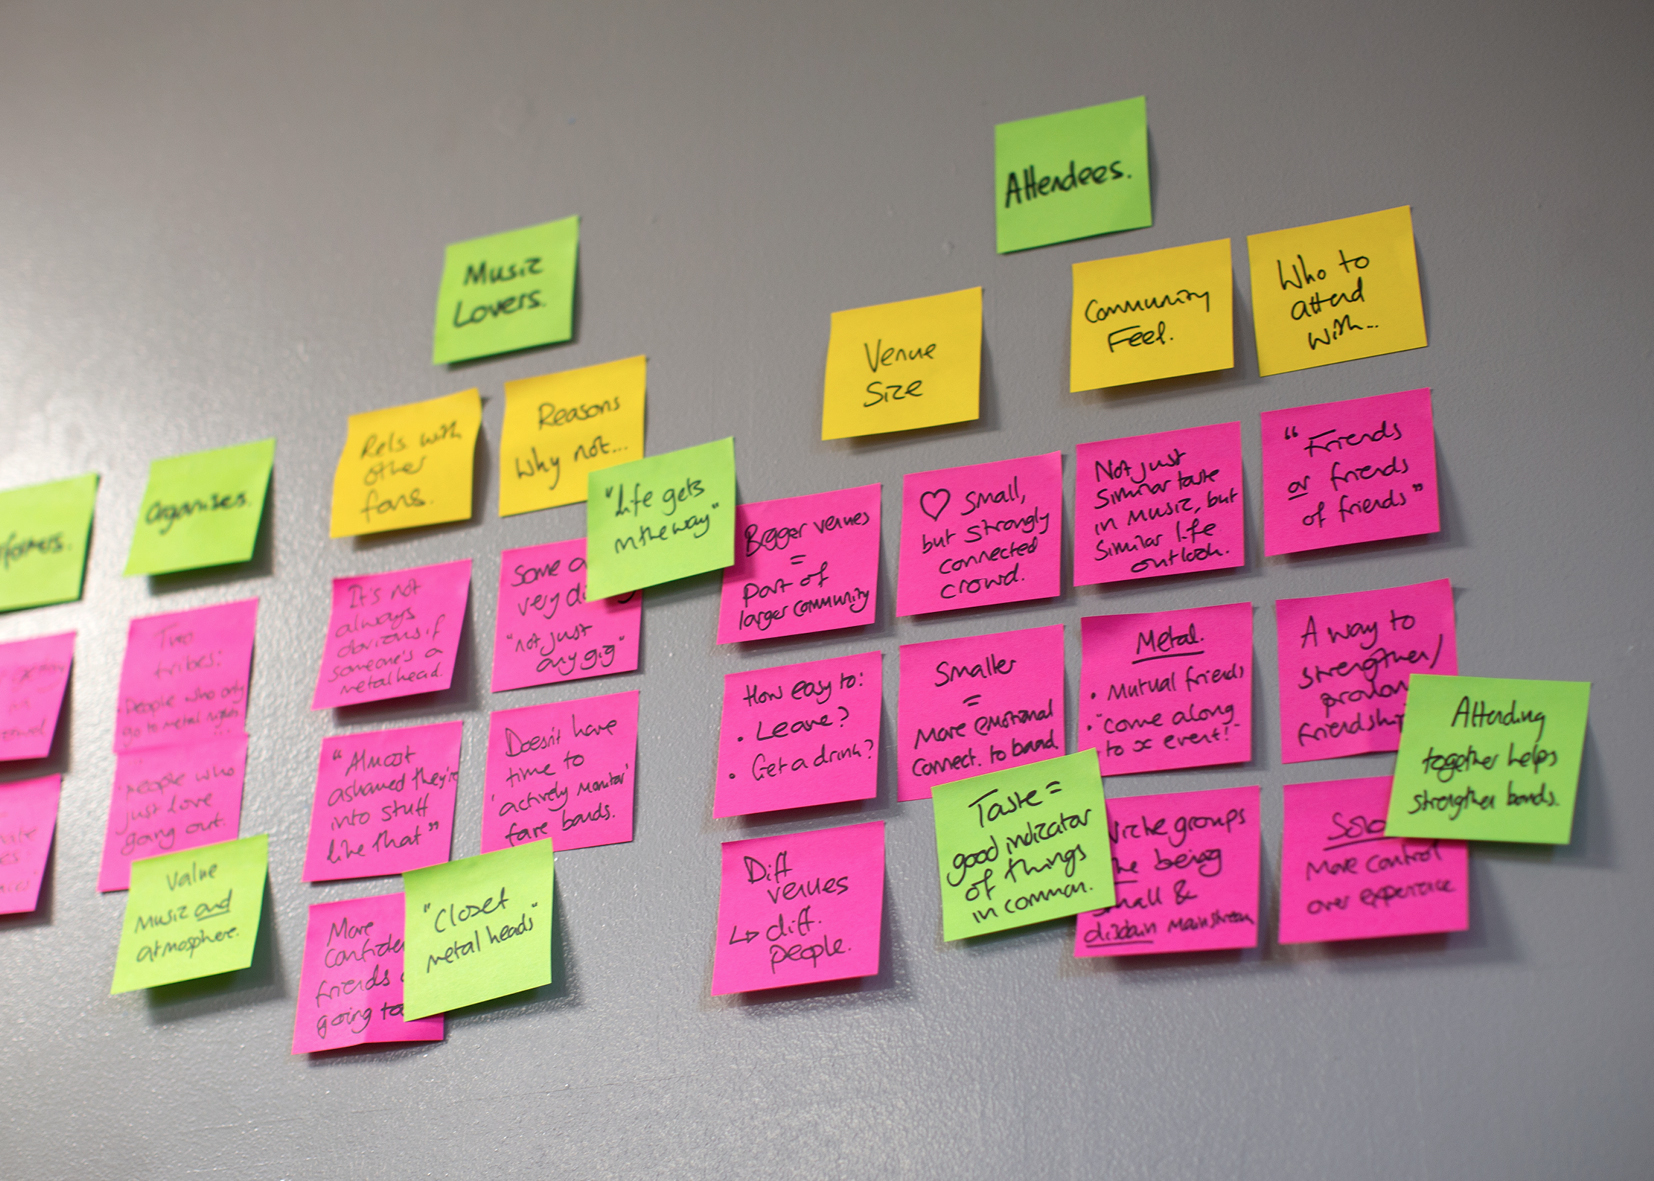 Affinity mapping research findings to identify key themes.